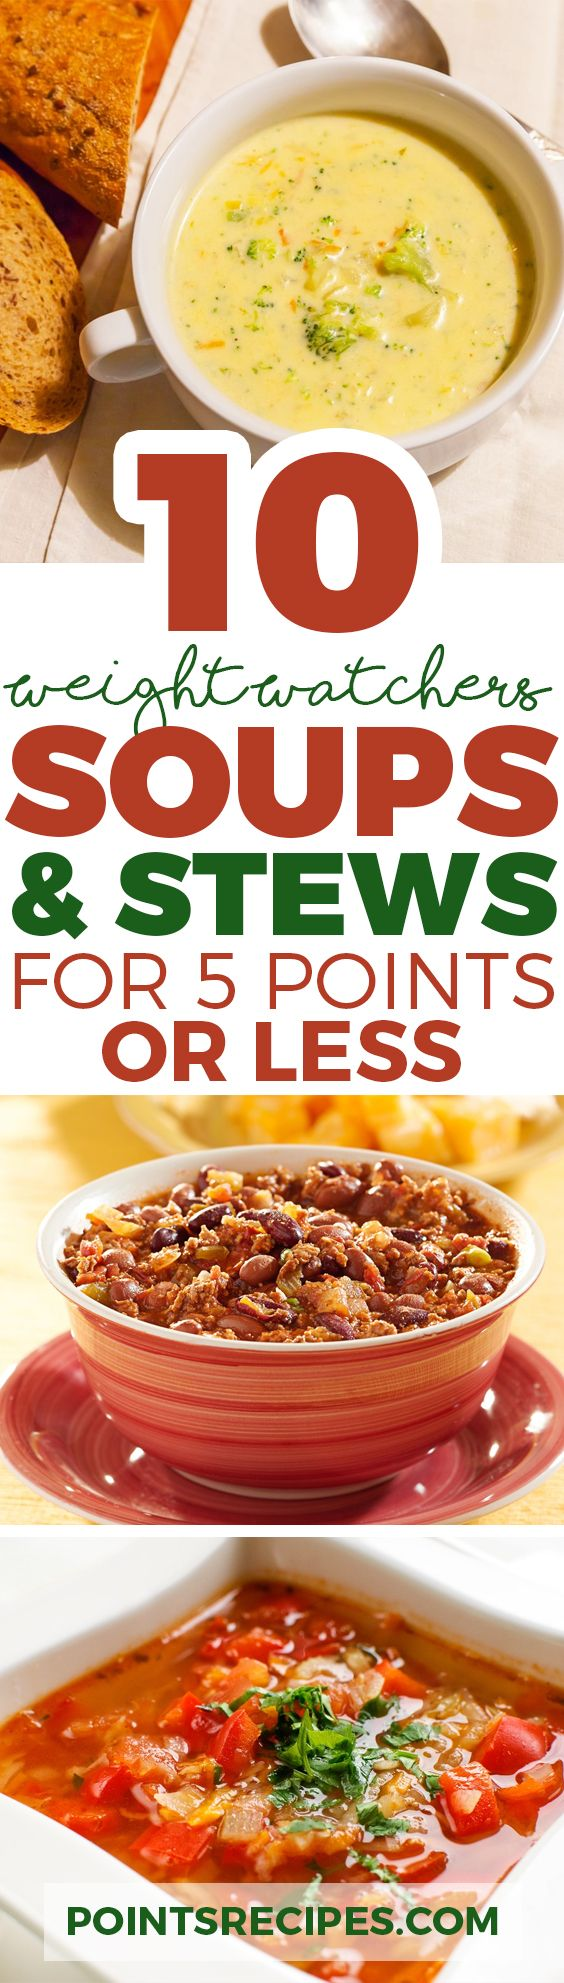 10 Satisfying Soups & Stews for 5 Weight Watchers SmartPoints or Less